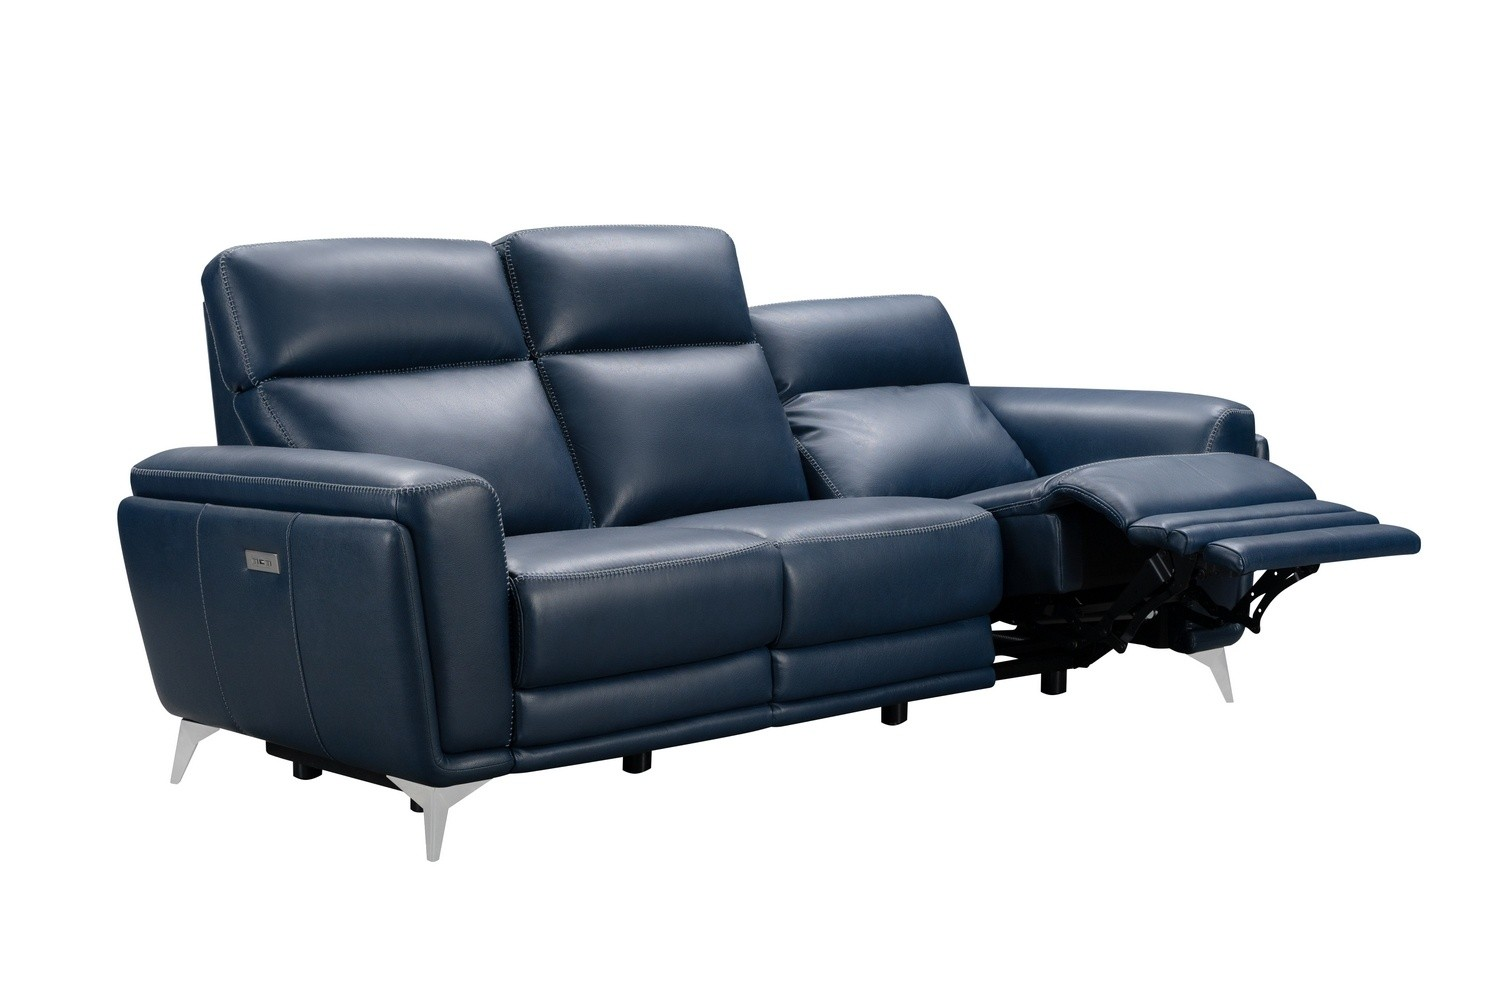 Barcalounger Cameron Power Reclining Sofa with Power Head Rests - Marco Navy Blue/Leather Match